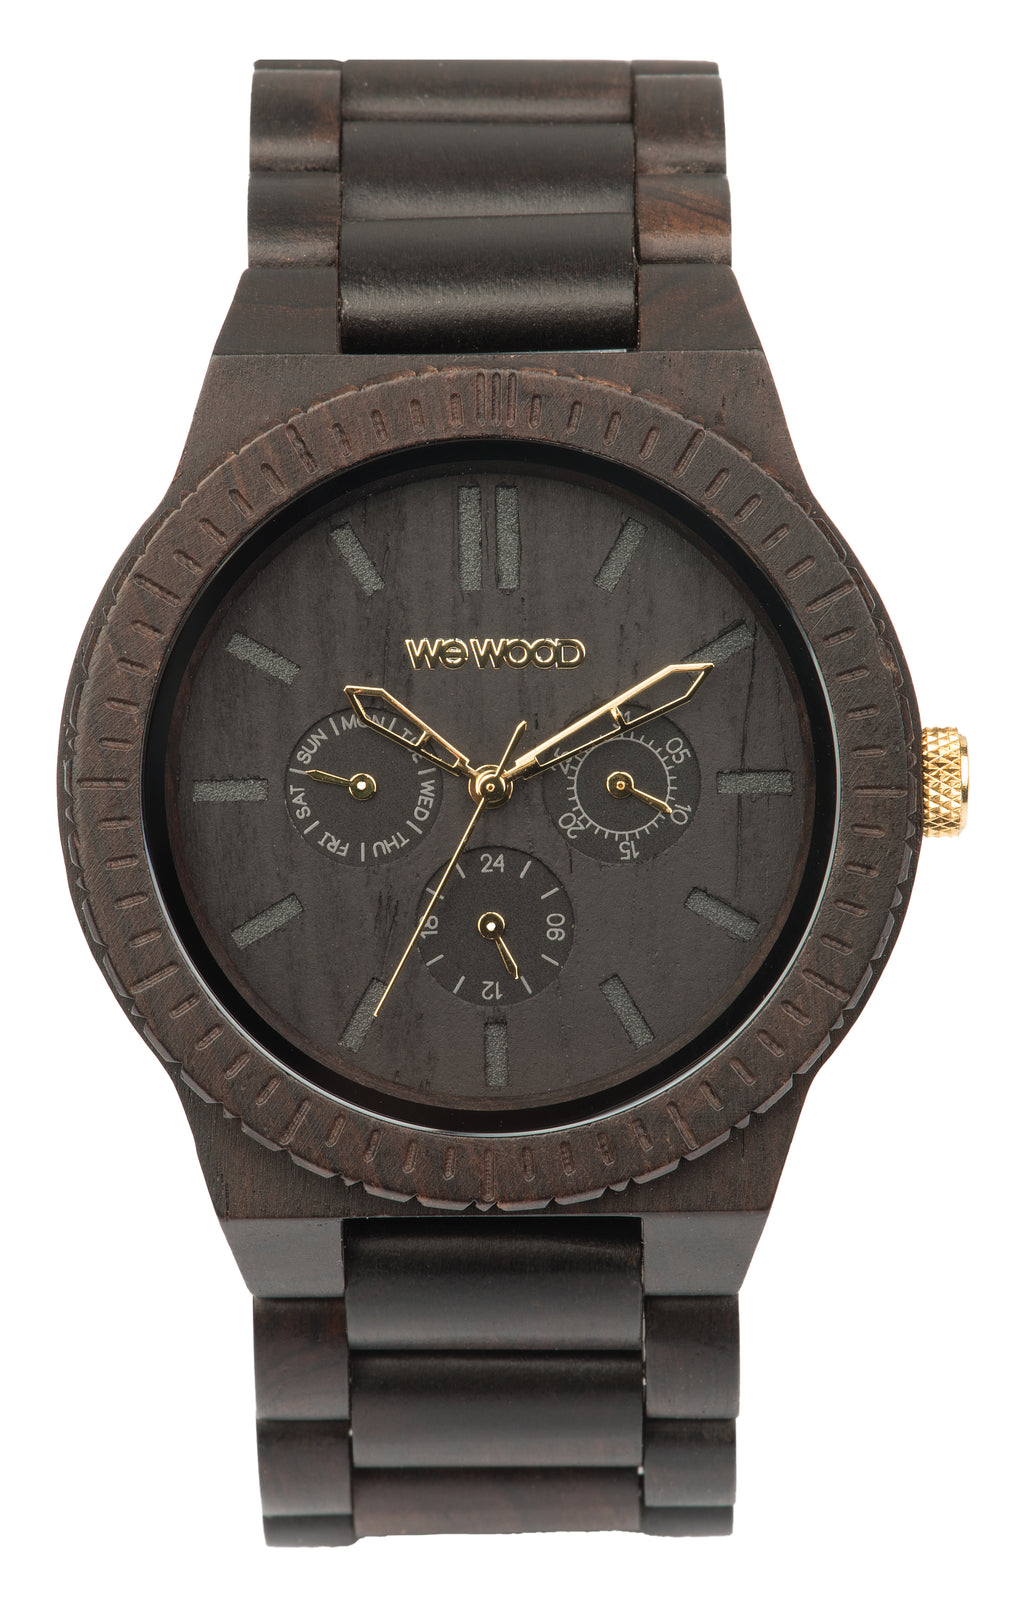 Kappa Wood WeWood Watch - Black/Gold